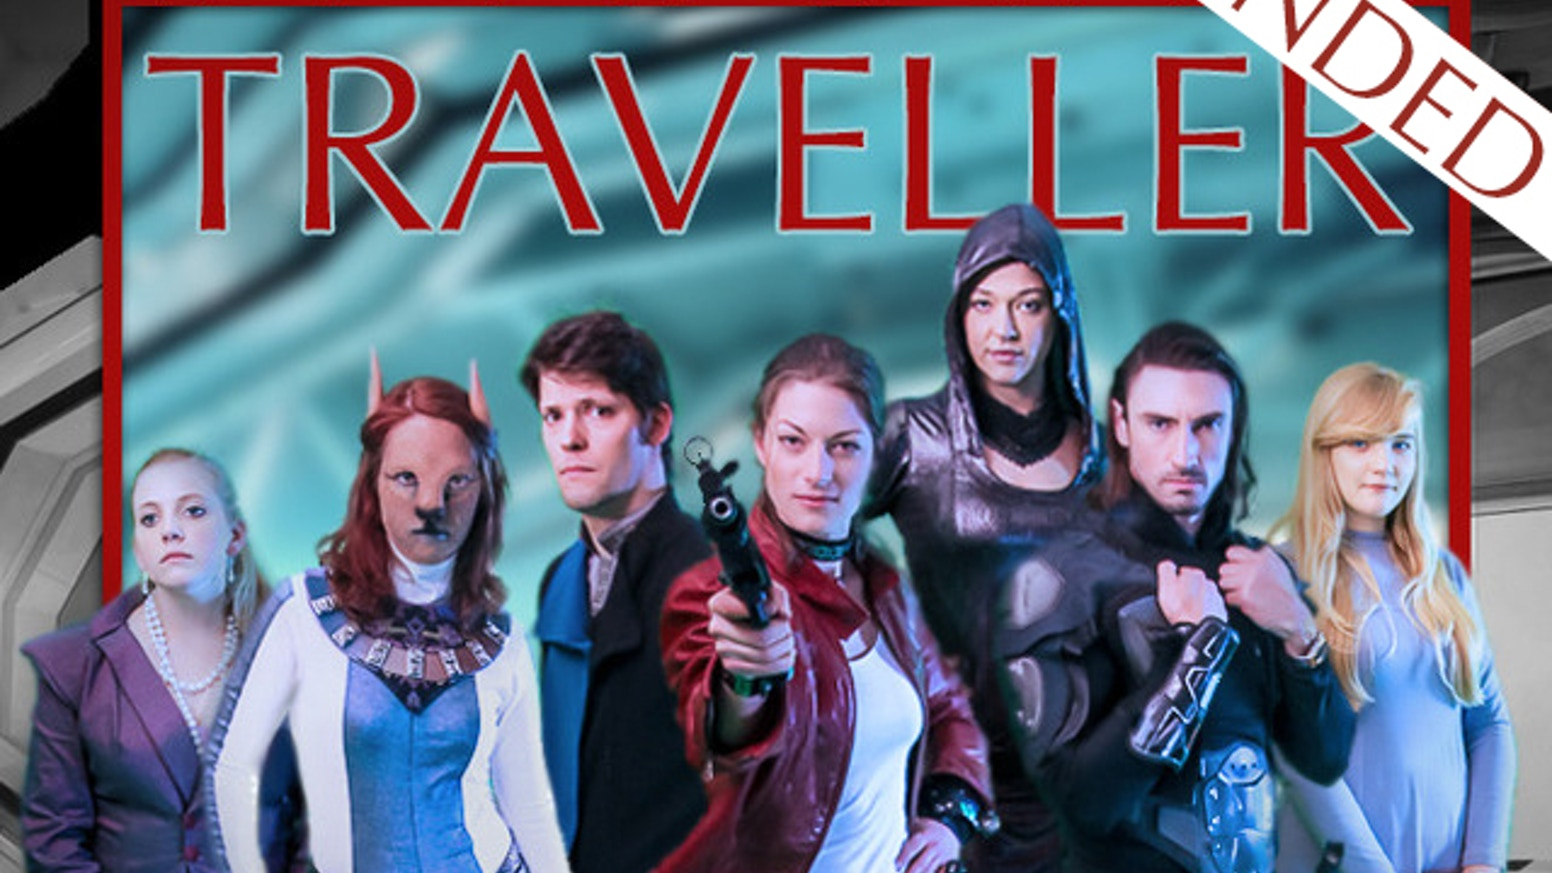 Spinward Traveller is based on the award winning role-playing game. Launch your imagination into the Traveller universe at Jump 6.